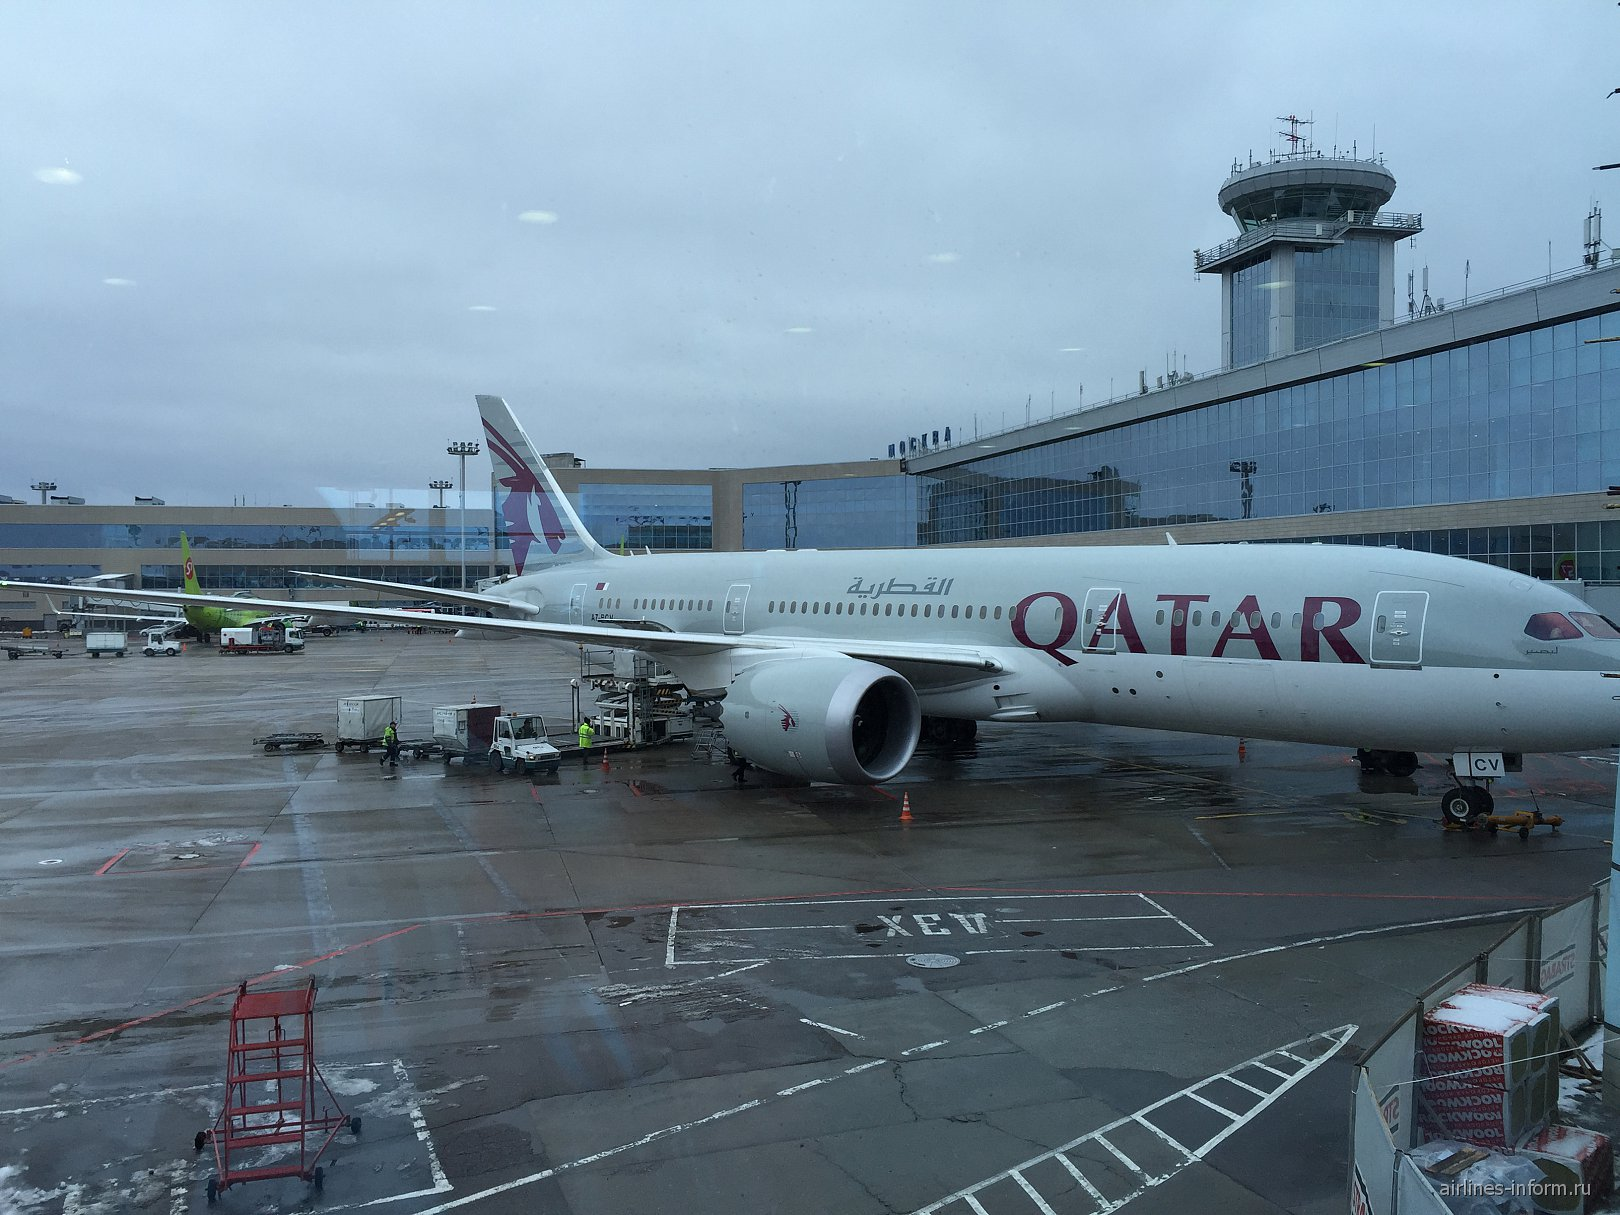 Москва-Мале c Qatar airways на лайнере мечты